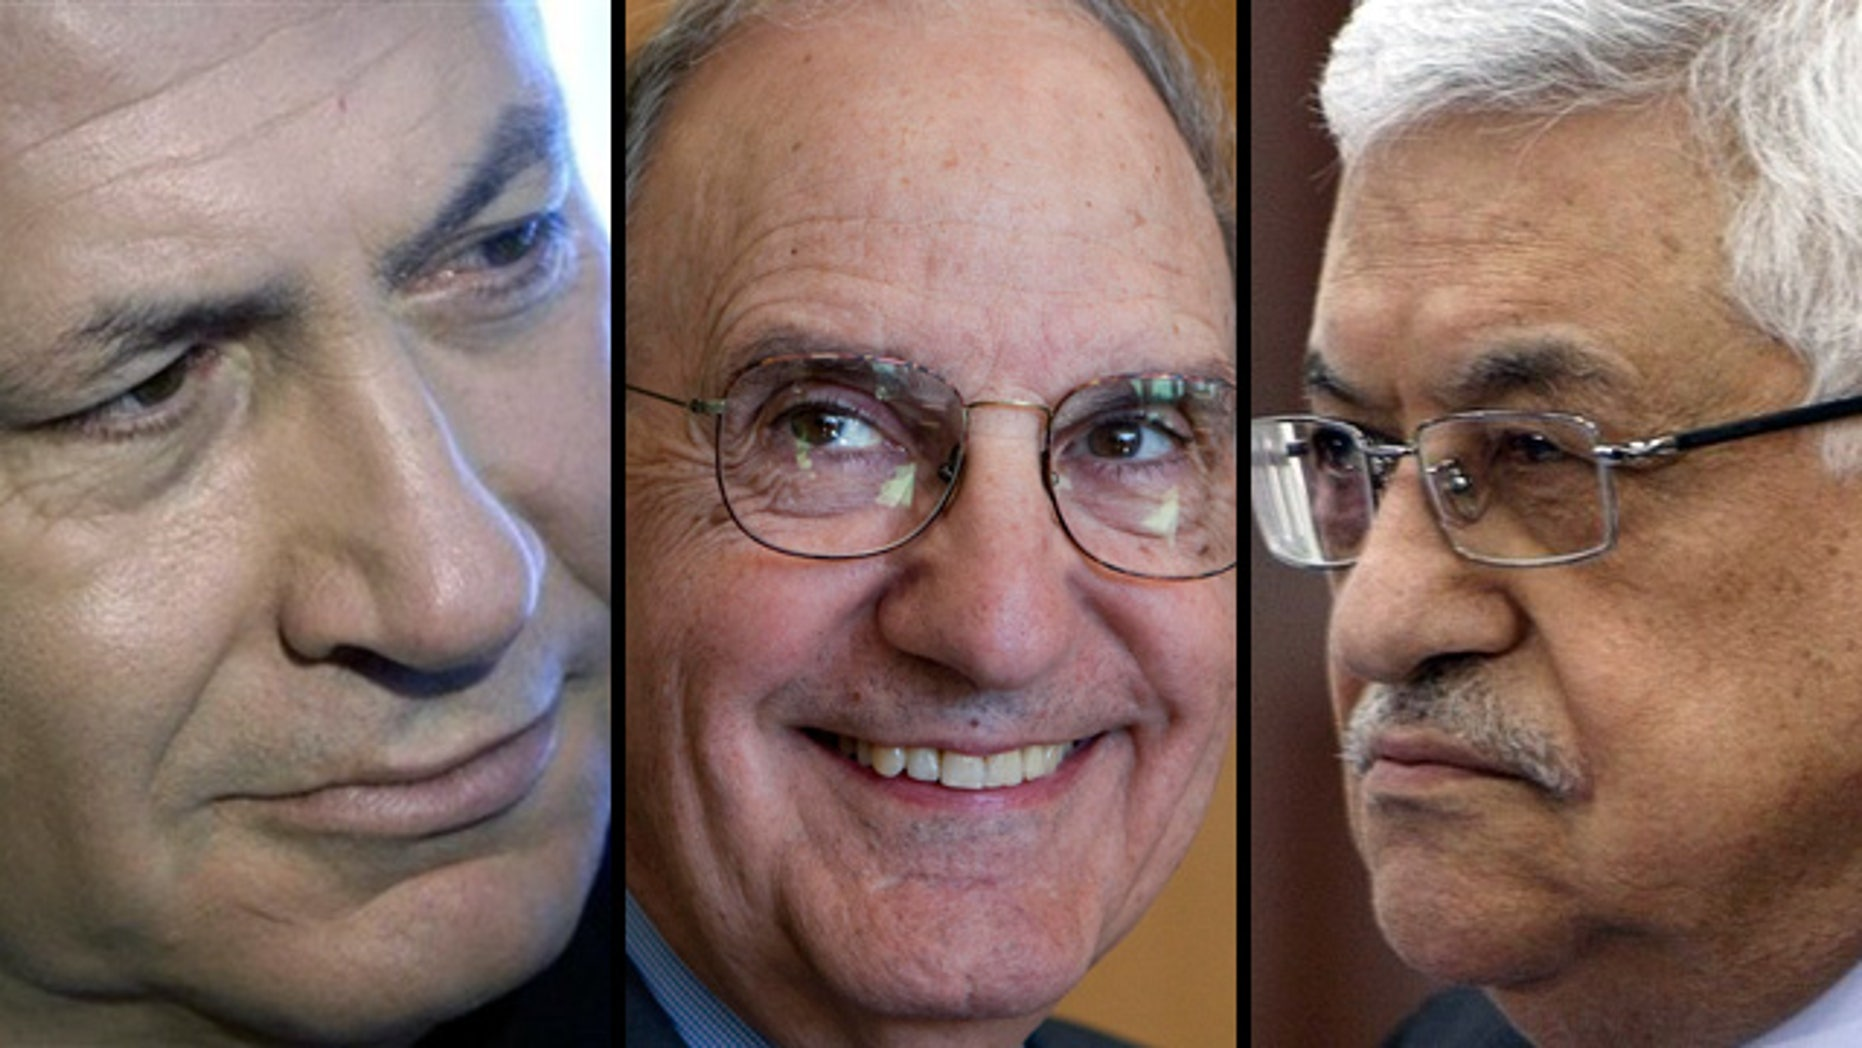 U.S. Mideast envoy George Mitchell, center, will shuttle between Palestinian President Mahmoud Abbas and Israeli Prime Minister Benjamin Netanyahu to narrow vast differences on terms of Palestinian statehood.